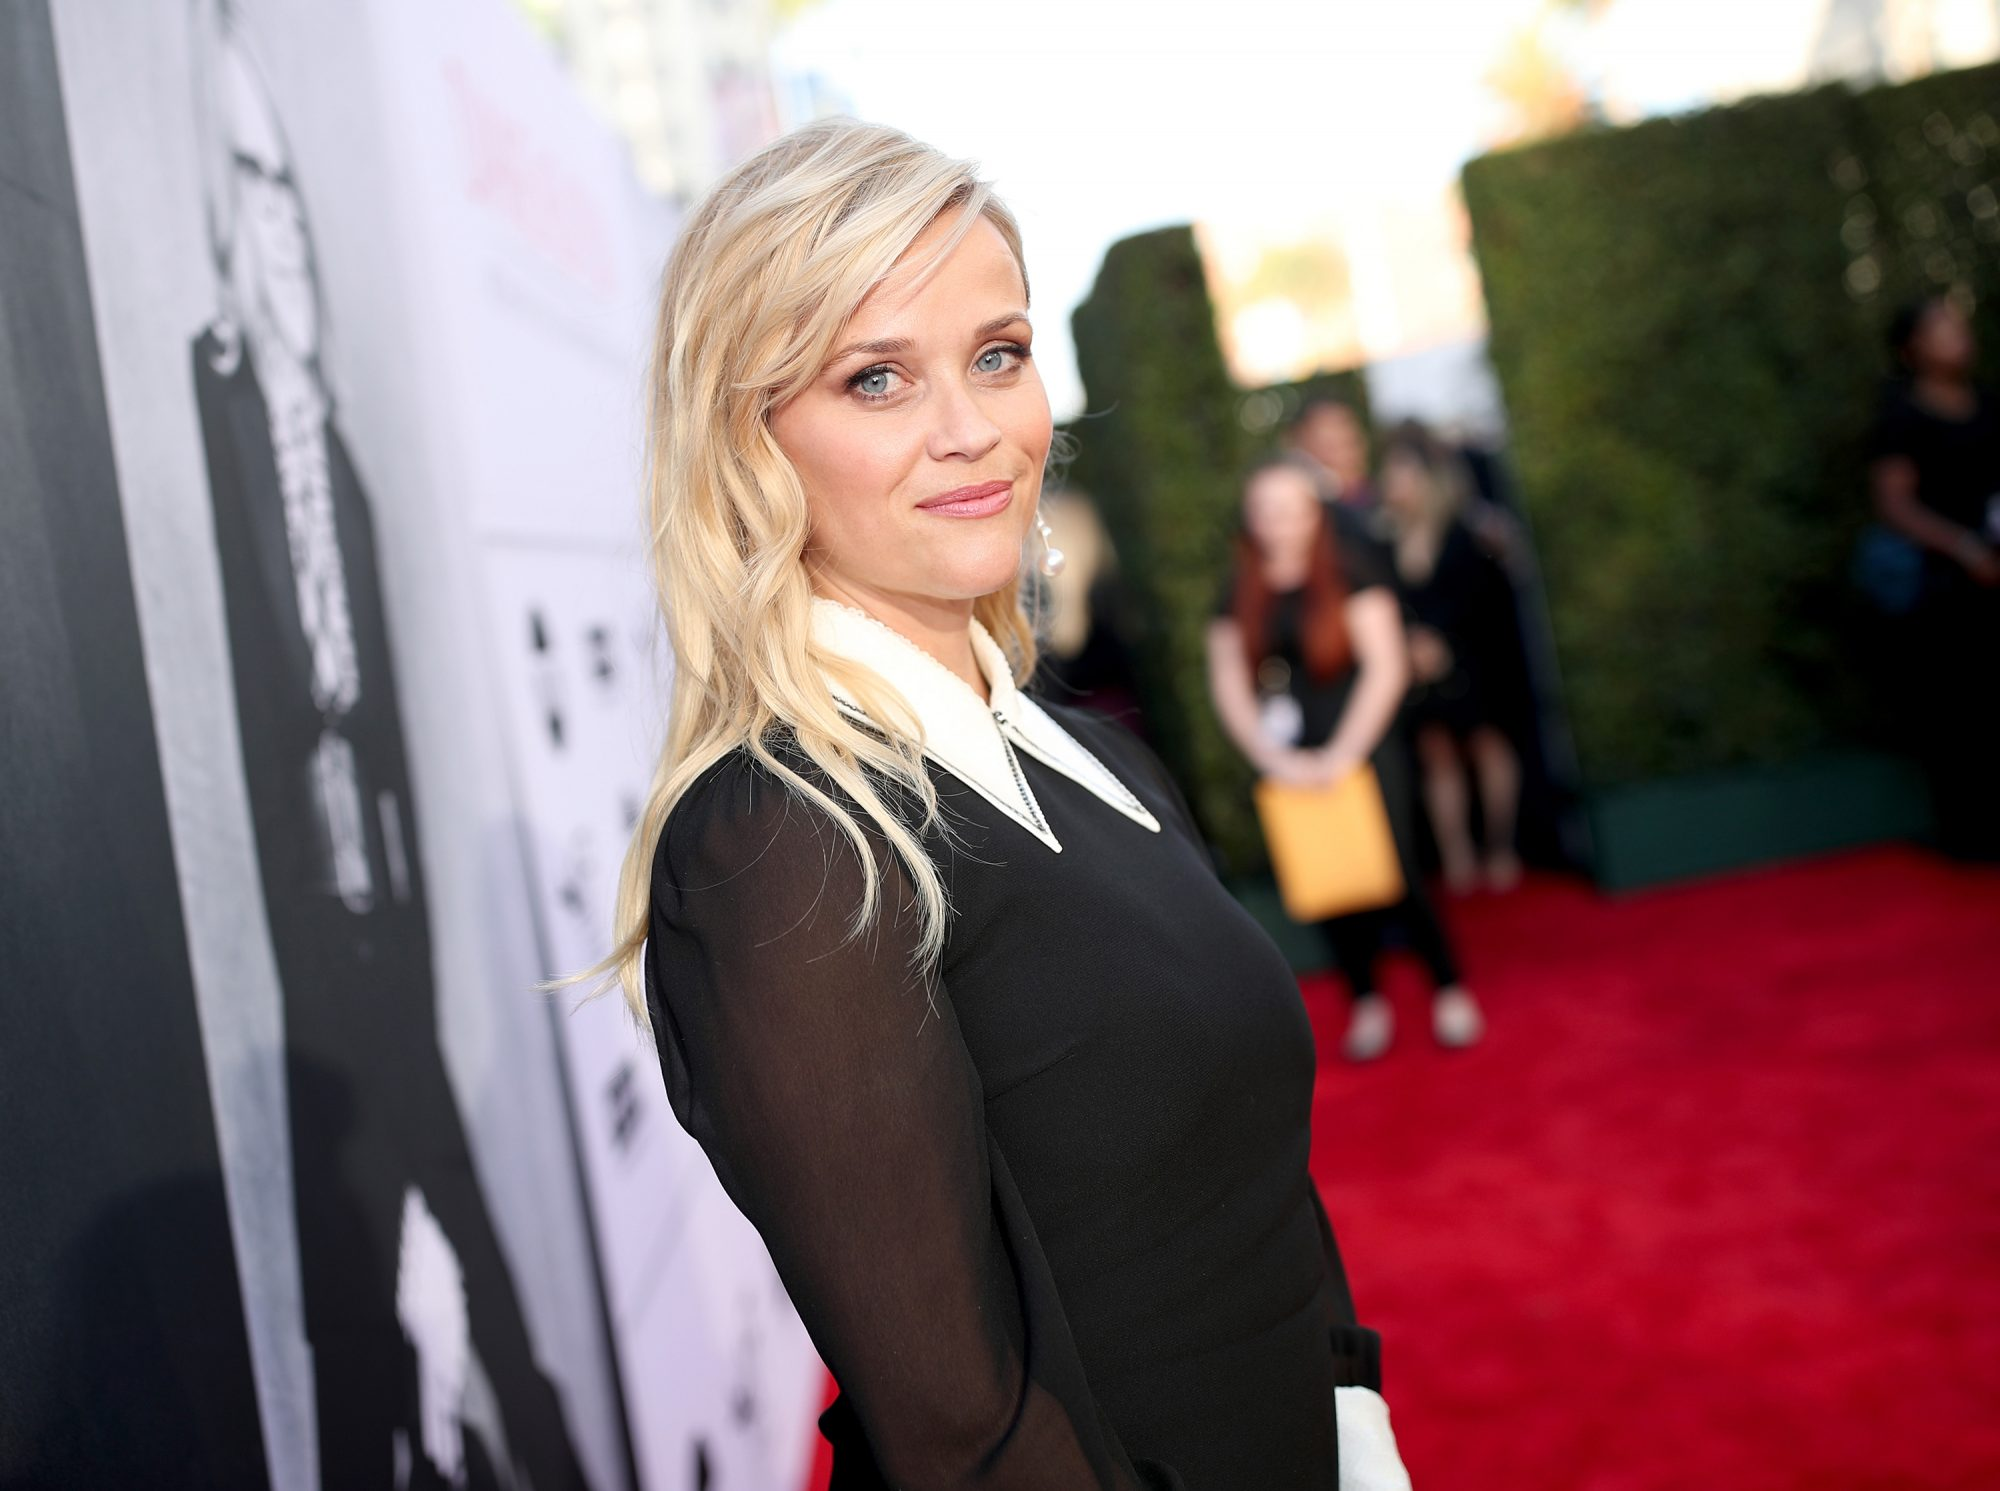 Reese Witherspoon's Denim Jacket Has a Sweet Shout-out to Her Southern Roots